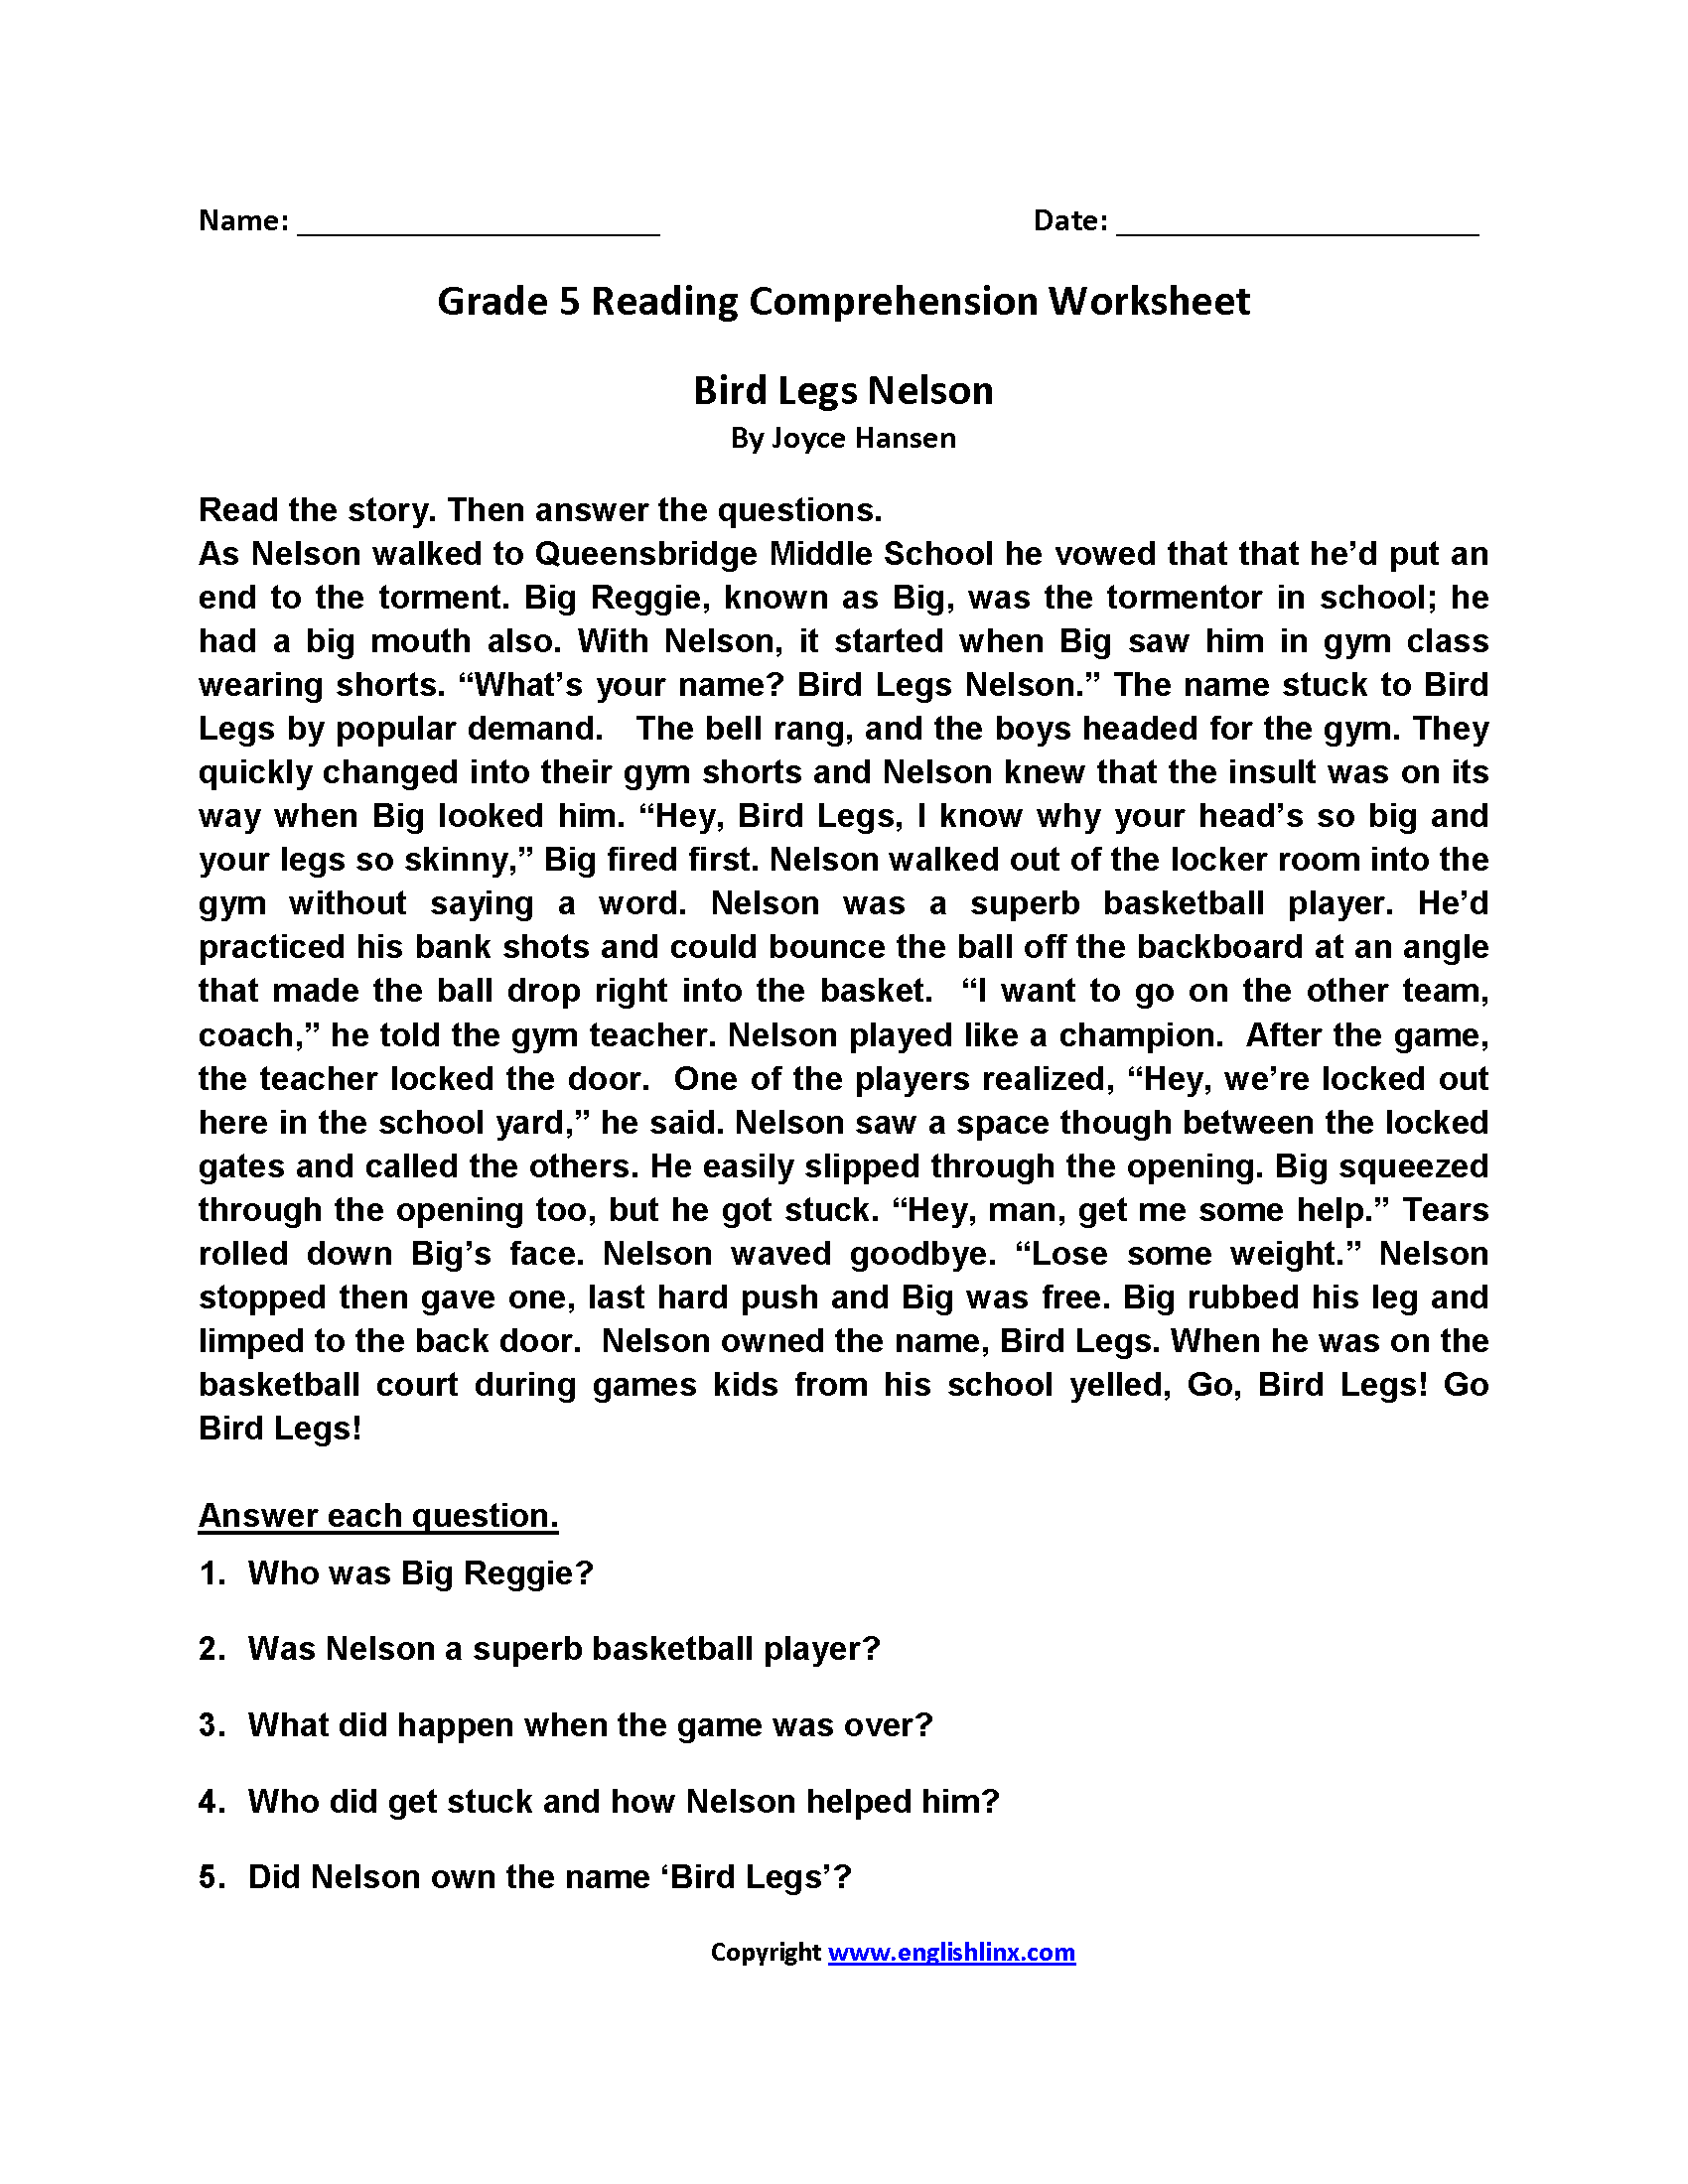 Worksheets Fifth Grade English Worksheets reading worksheets fifth grade worksheets